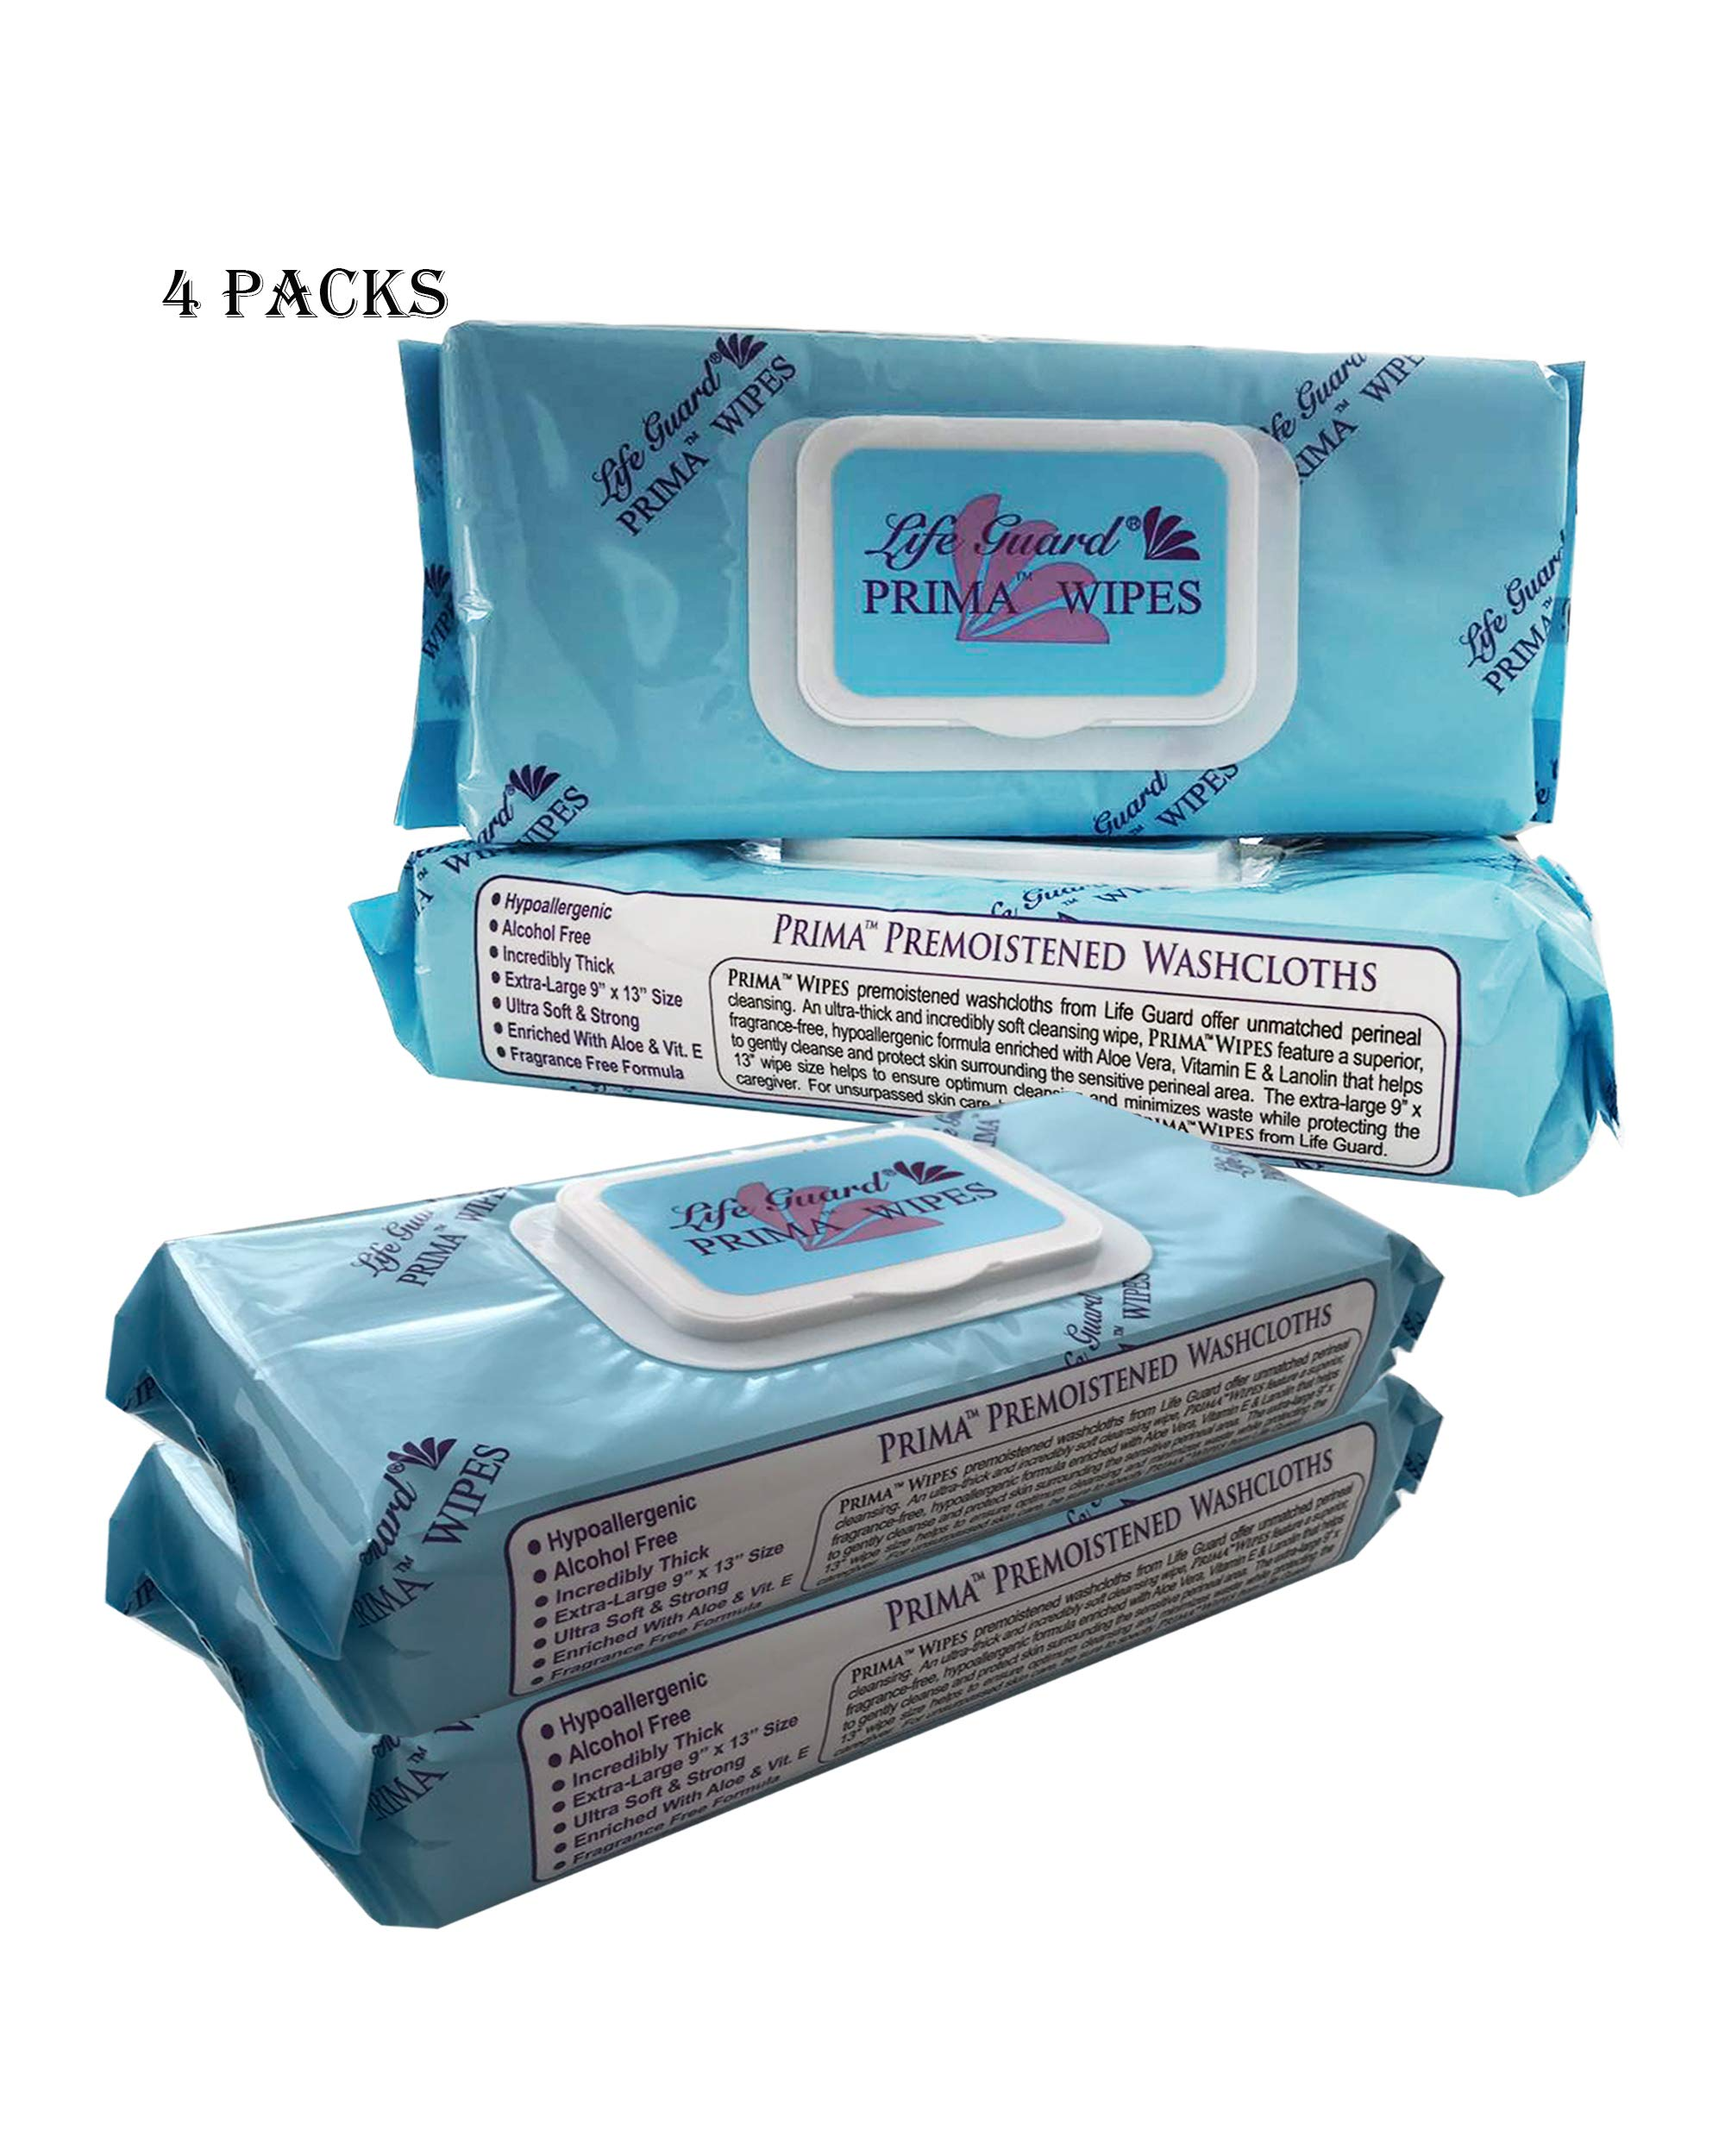 4 Packs-PREMIUM (13''x 9'' XL), Disposable Adult Washcloth/Moist Cleaning Wipes, Alcohol-Free, Ultra Soft/Strong, Fragrance-Free Formula,Prefect For Personal Cleaning, Travel, Bath-by LP Supply